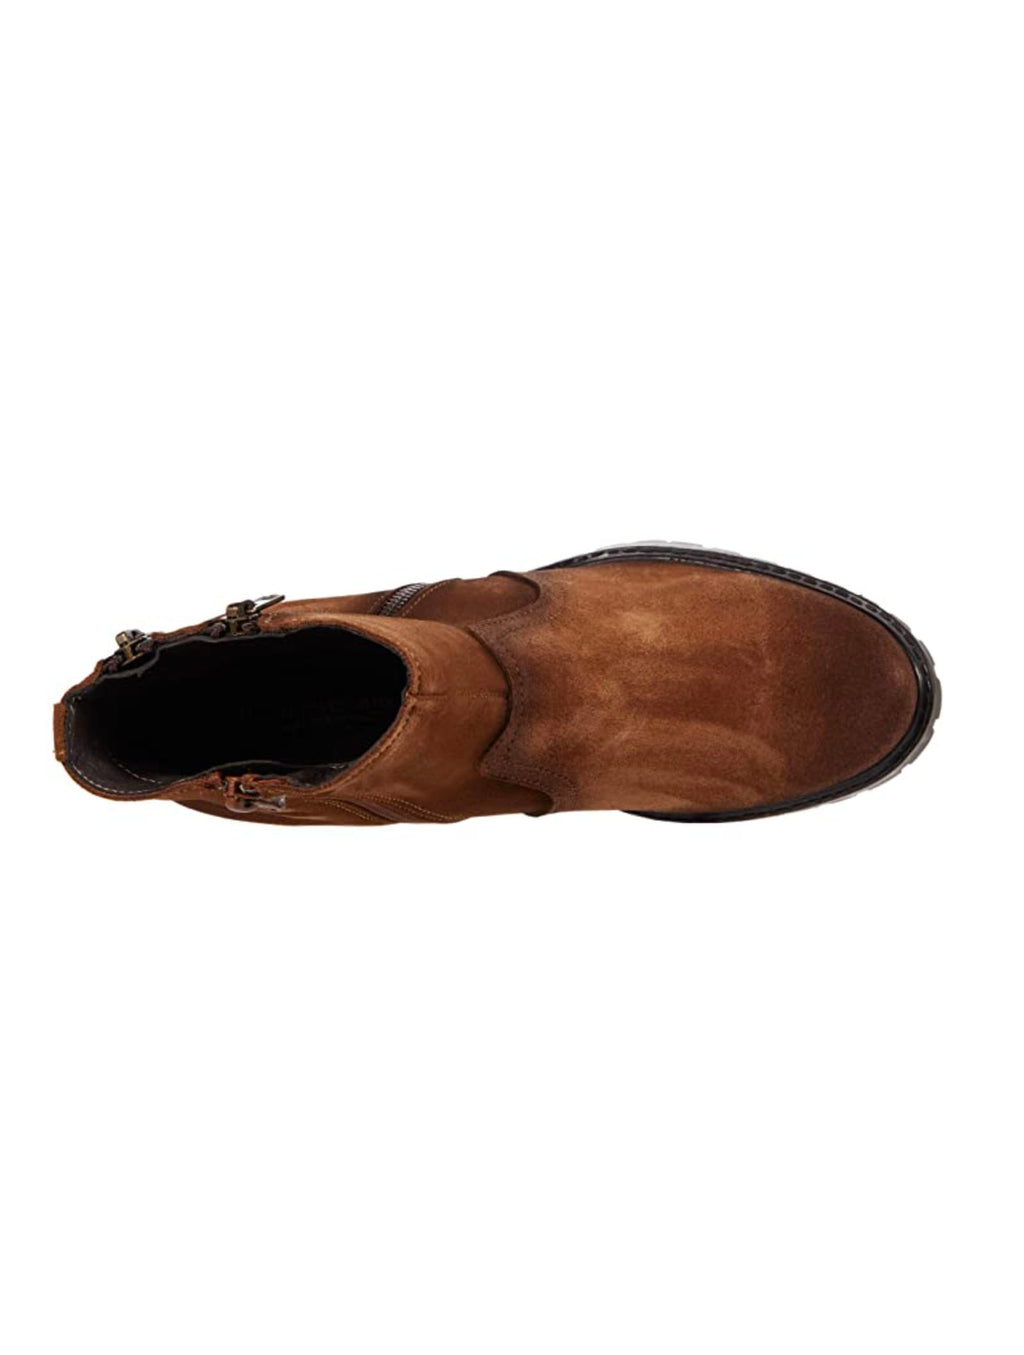 Eric Michael Caressa in Brown Suede